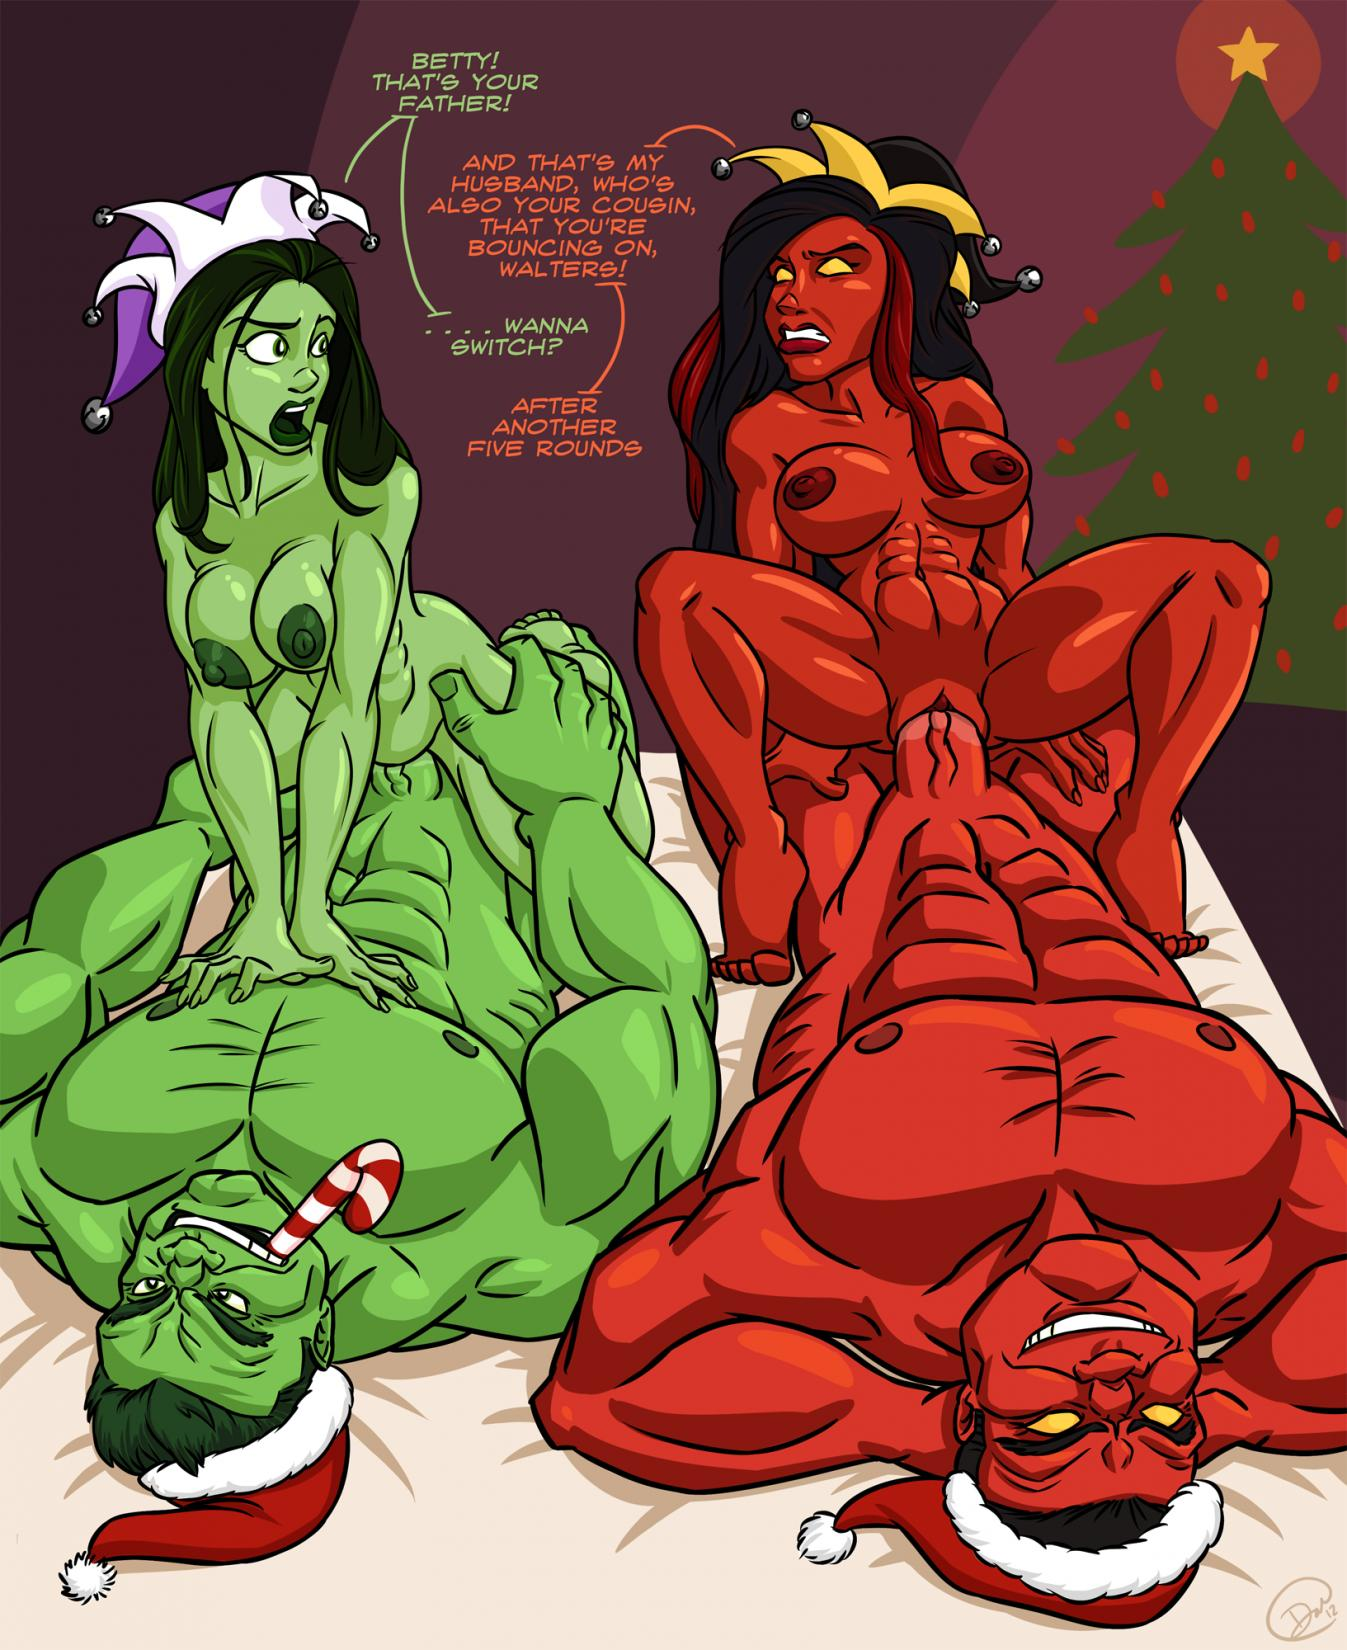 hulk she kiss hulk and If it exists there's p website